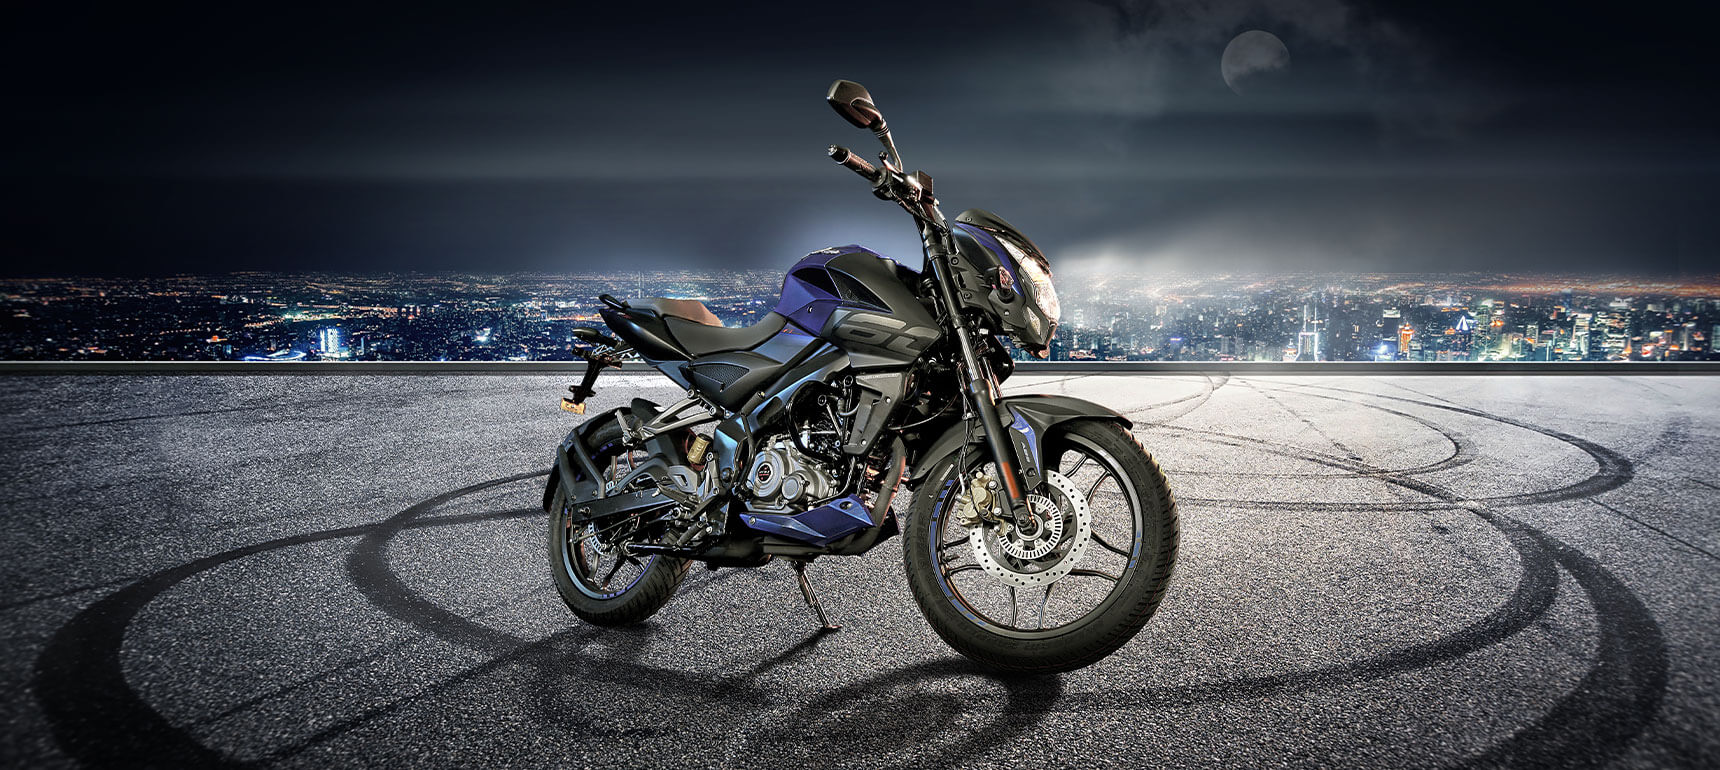 Black and Blue Color Bajaj Pulsar NS 160cc Twin Disk ABS Motorcycle